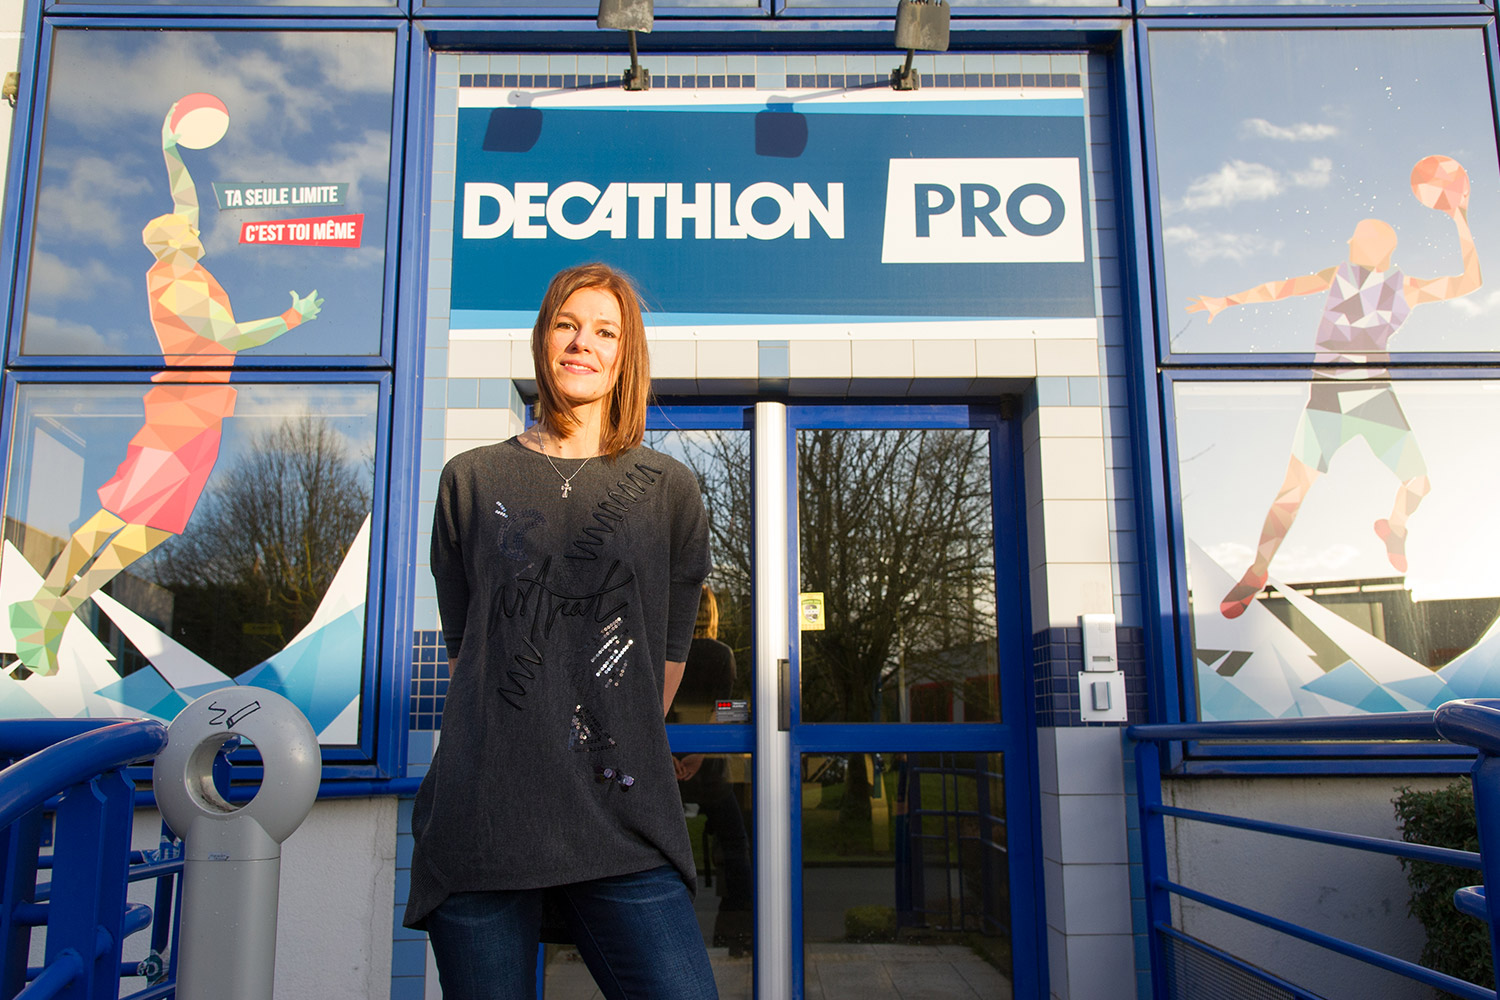 Laura Renaud : Responsable Communication de Decathlon Pro